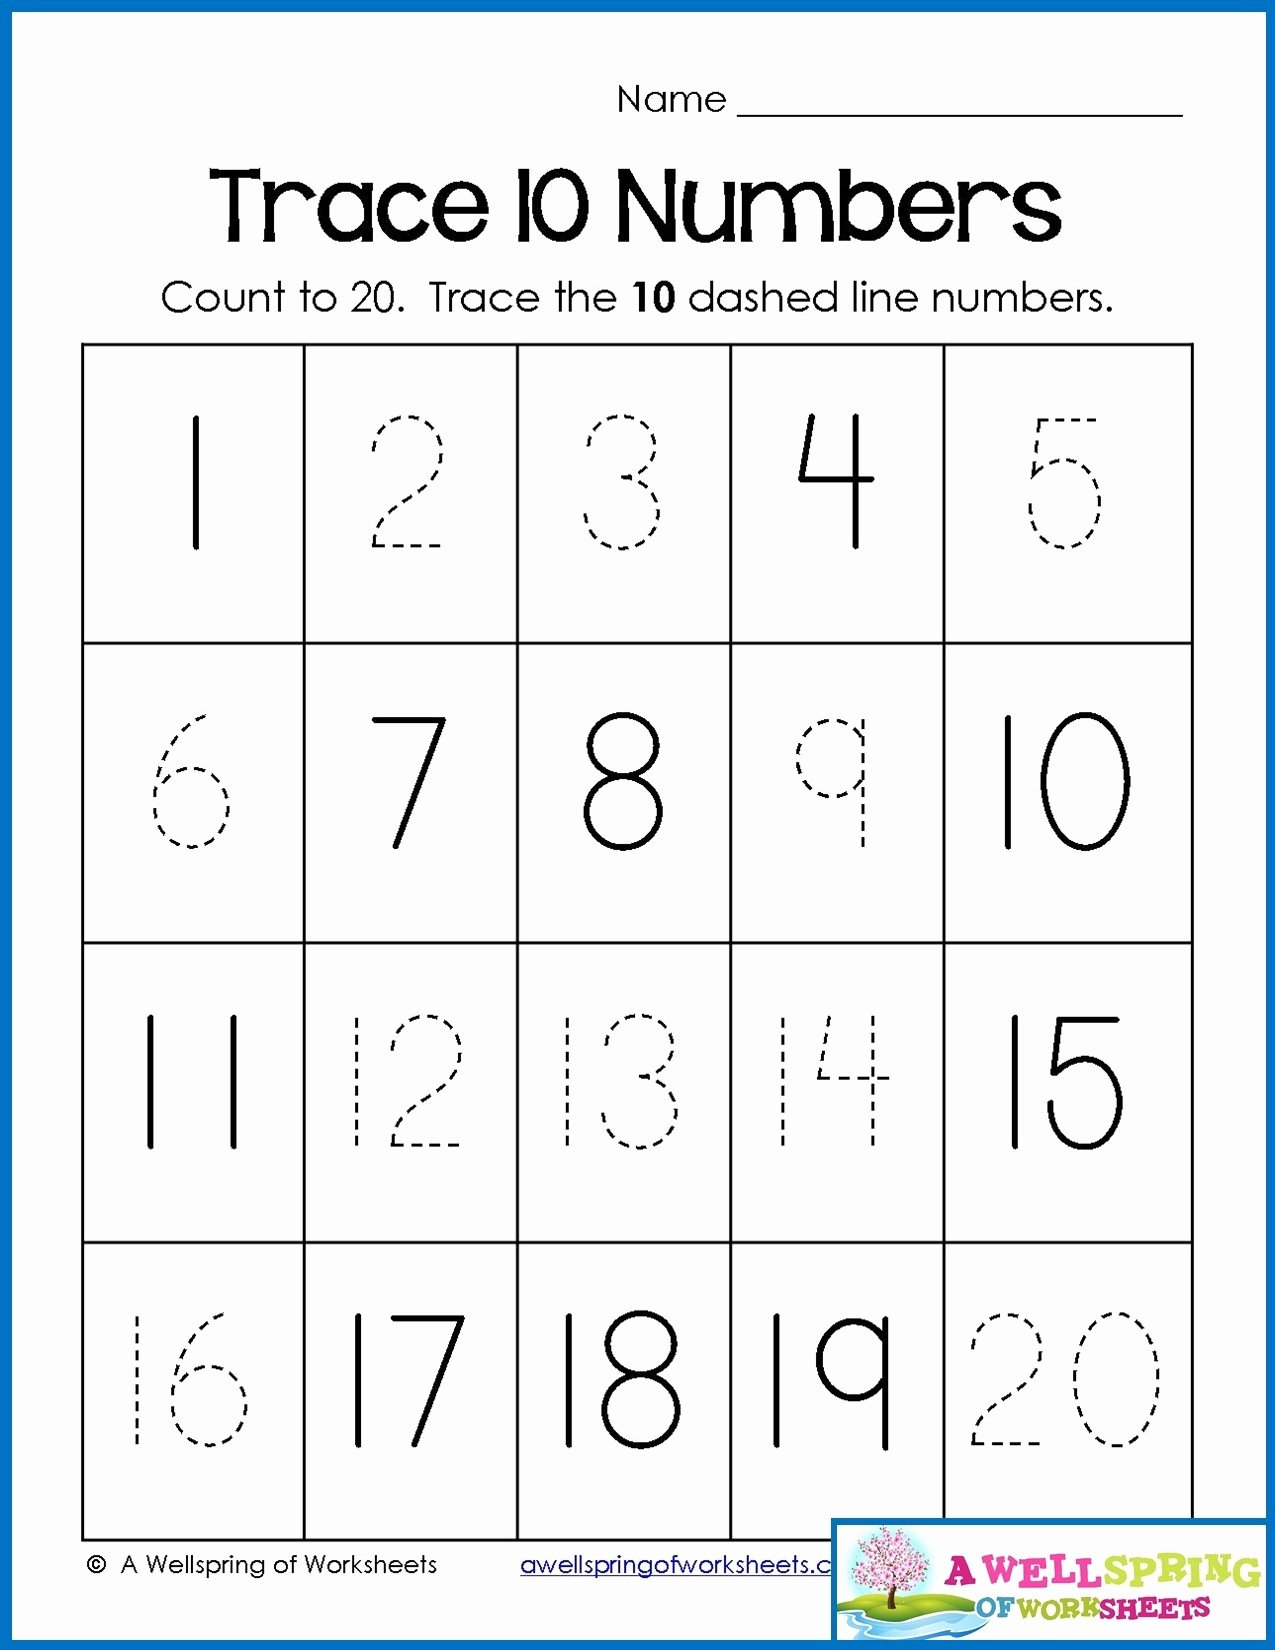 Worksheets for Preschoolers On Numbers Fresh Math Worksheet Number Worksheets for Preschool Christmas